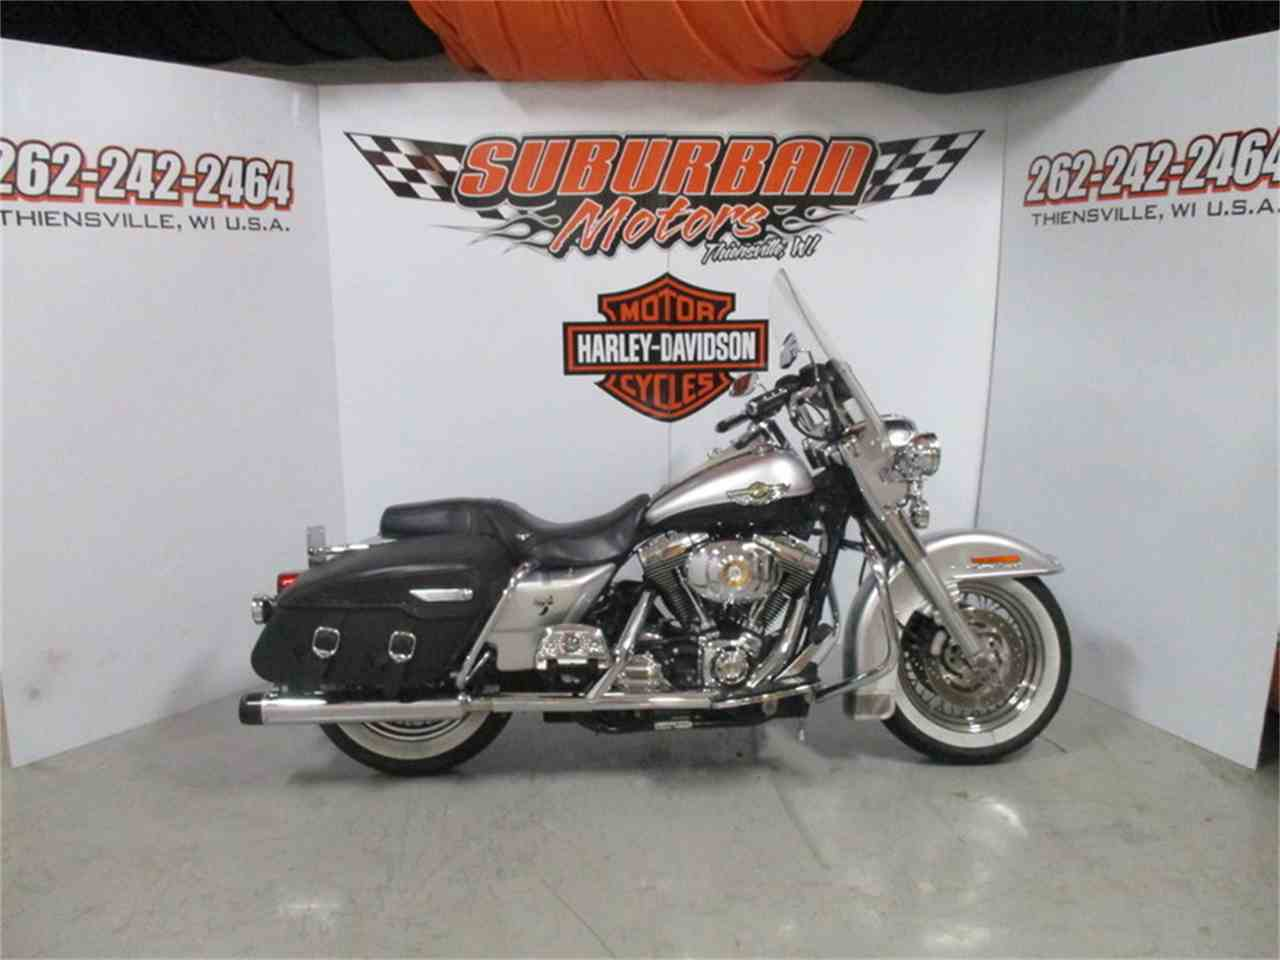 Large Picture of 2003 Harley-Davidson® FLHRC - Road King® Classic located in Wisconsin - $7,734.00 - J8B5